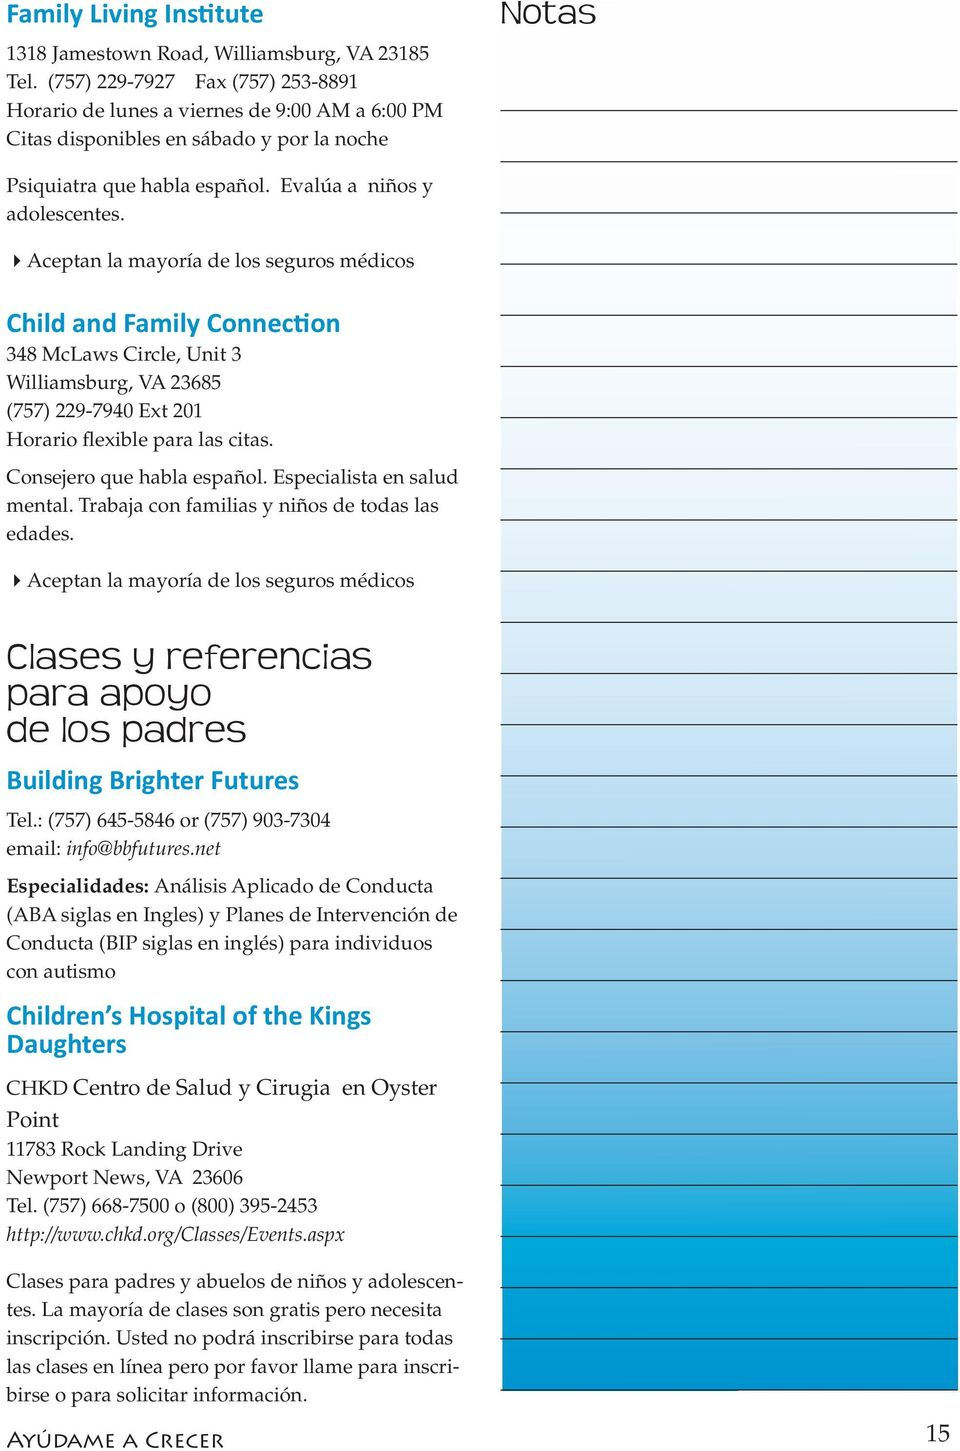 4Aceptan la mayoría de los seguros médicos Child and Family Connection 348 McLaws Circle, Unit 3 Williamsburg, VA 23685 (757) 229-7940 Ext 201 Horario flexible para las citas.